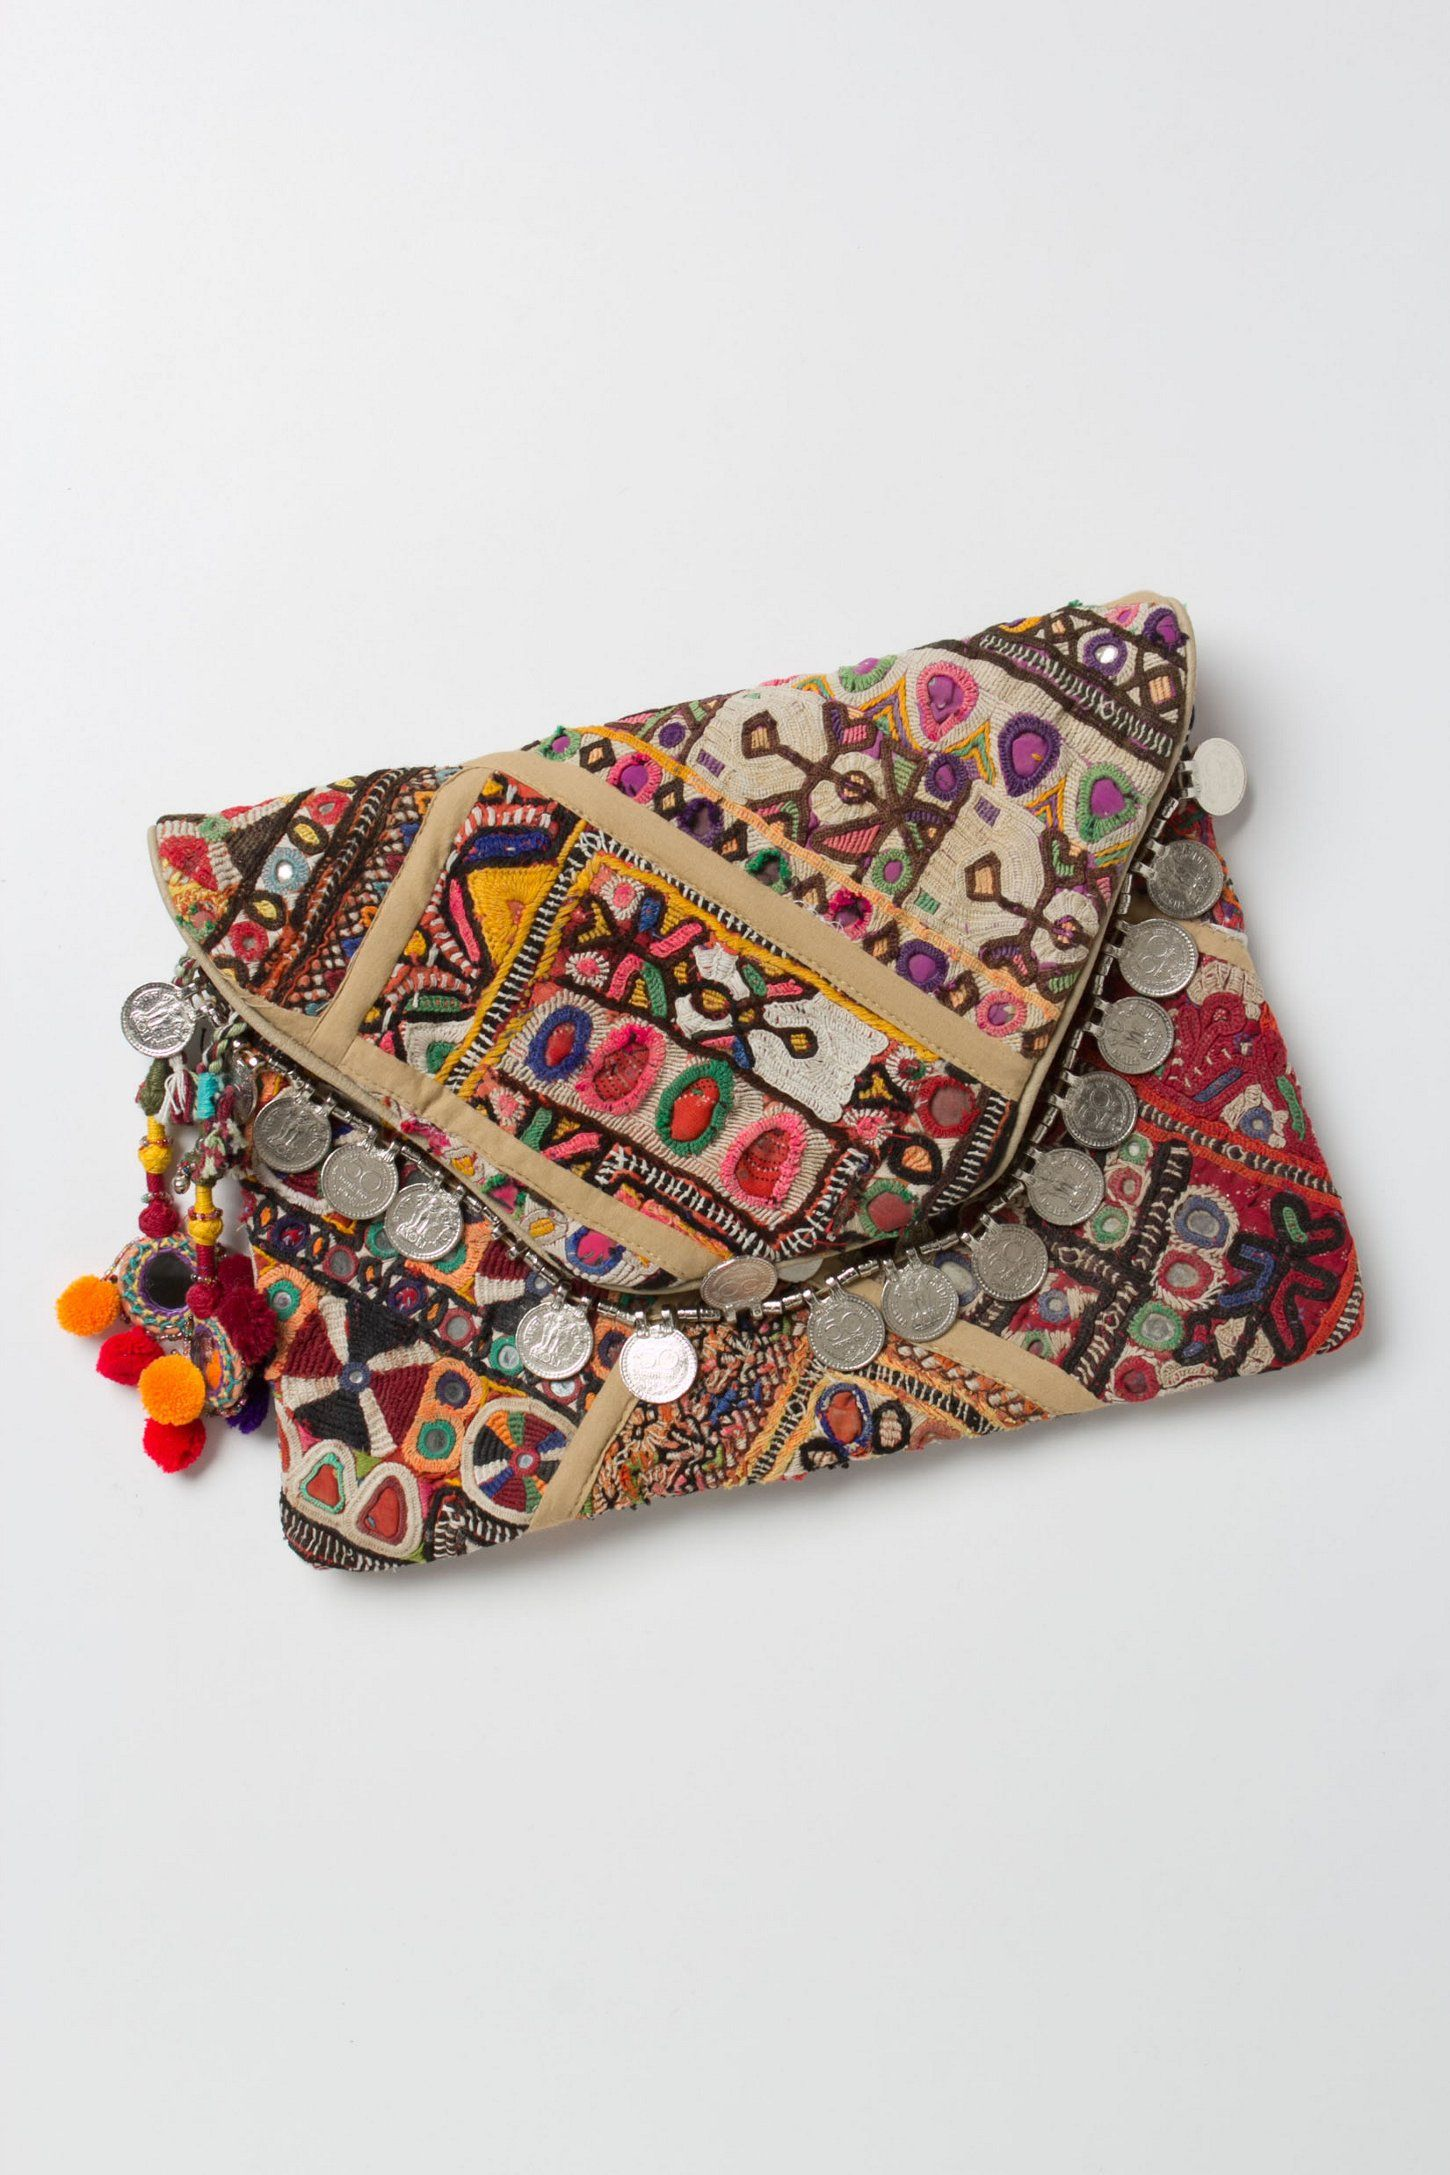 Adele  I ve seen many coin purses like these in my travels.  PranaClutch   Anthropologie 365d7c578e6ce